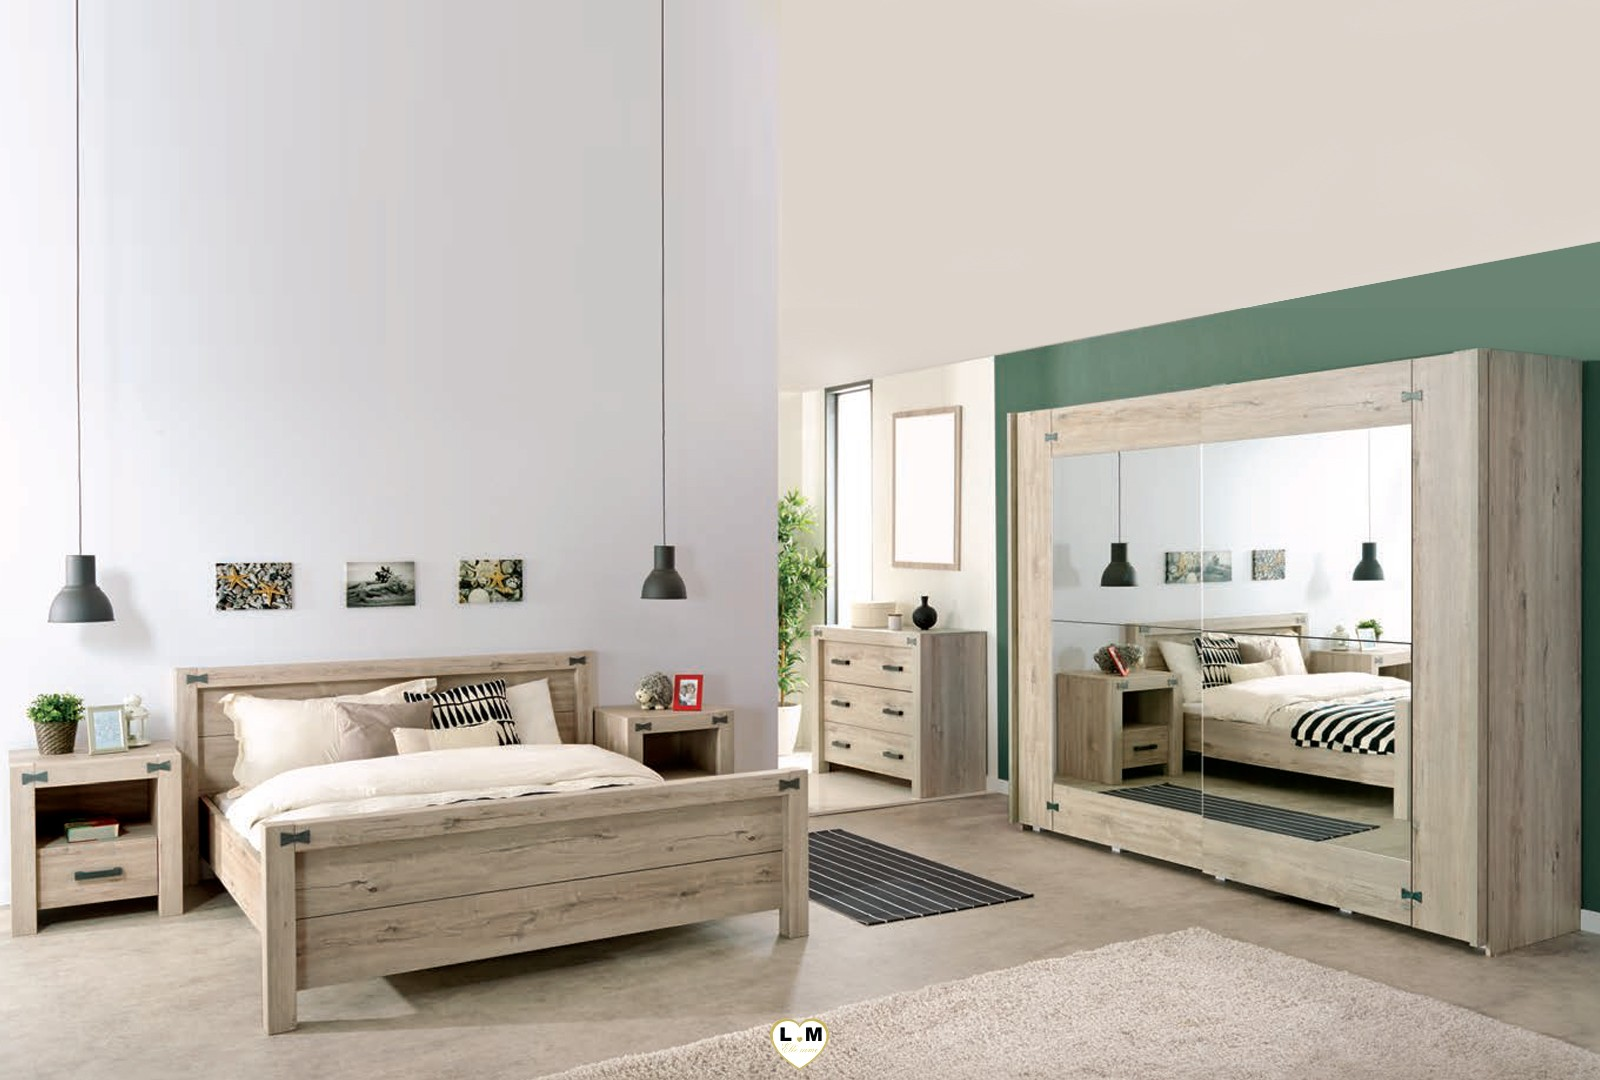 maybeline bois chene gris clair ensemble chambre a coucher lignemeuble com. Black Bedroom Furniture Sets. Home Design Ideas